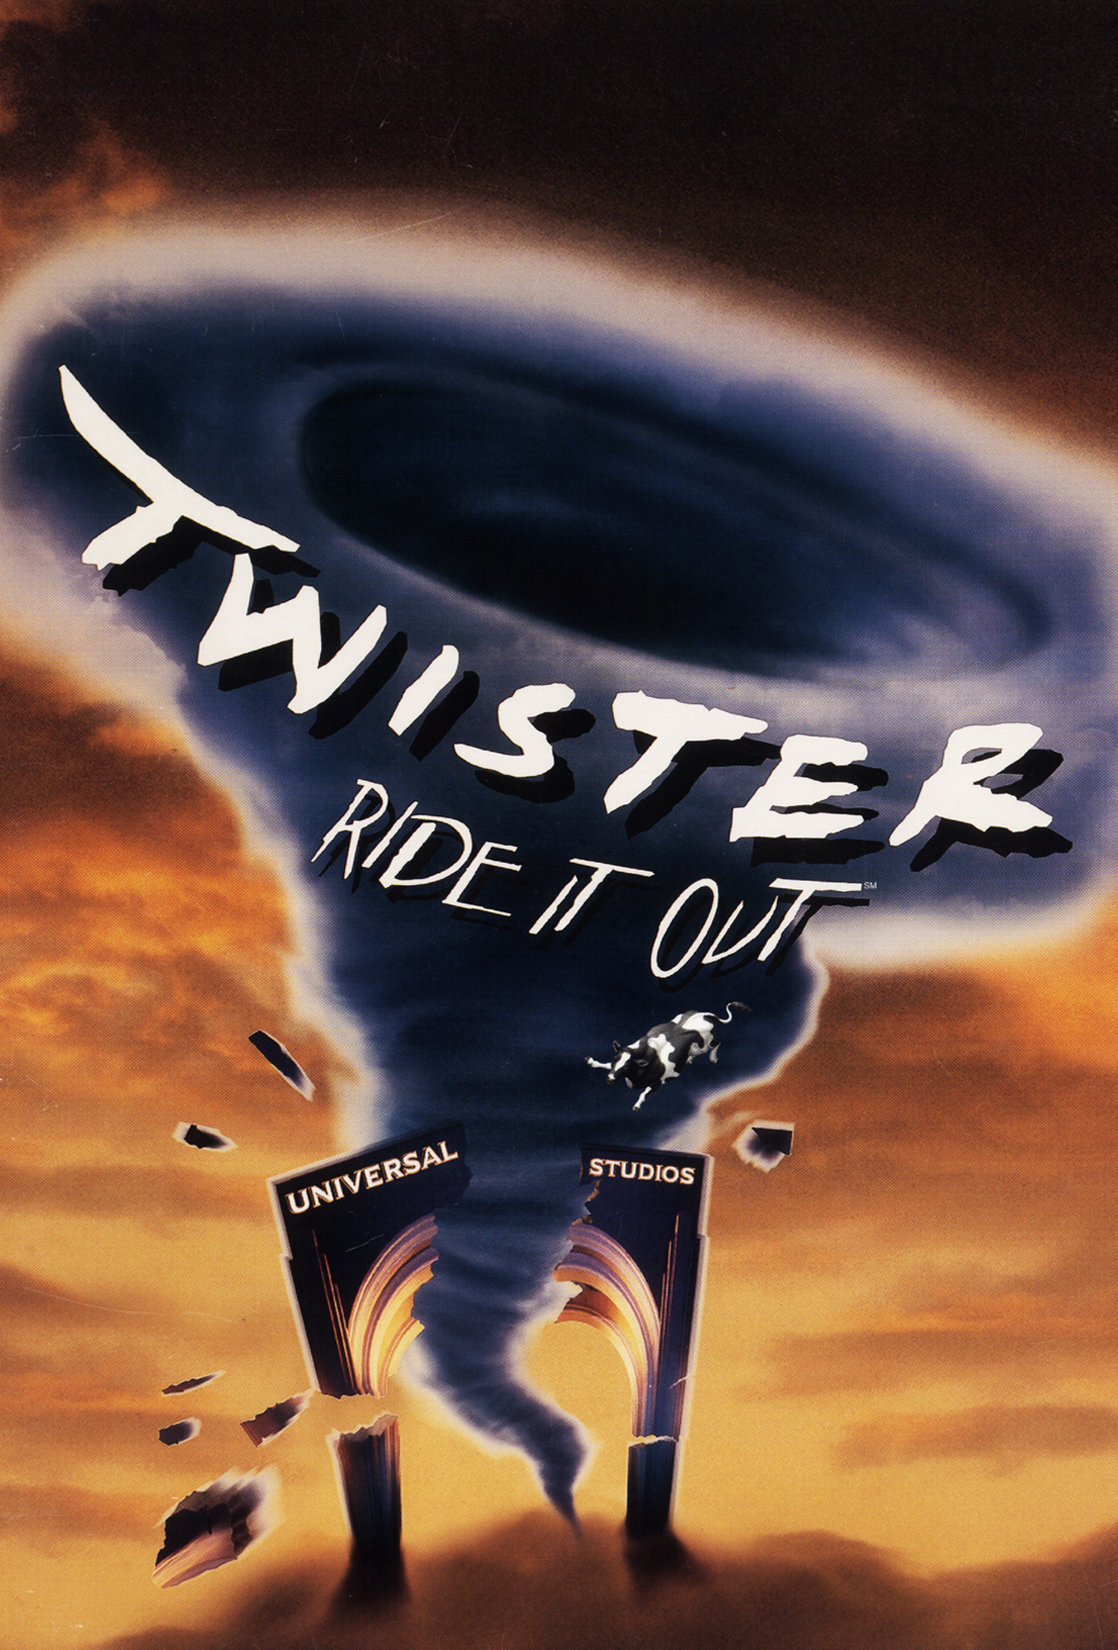 Twister: Ride It Out (1998)